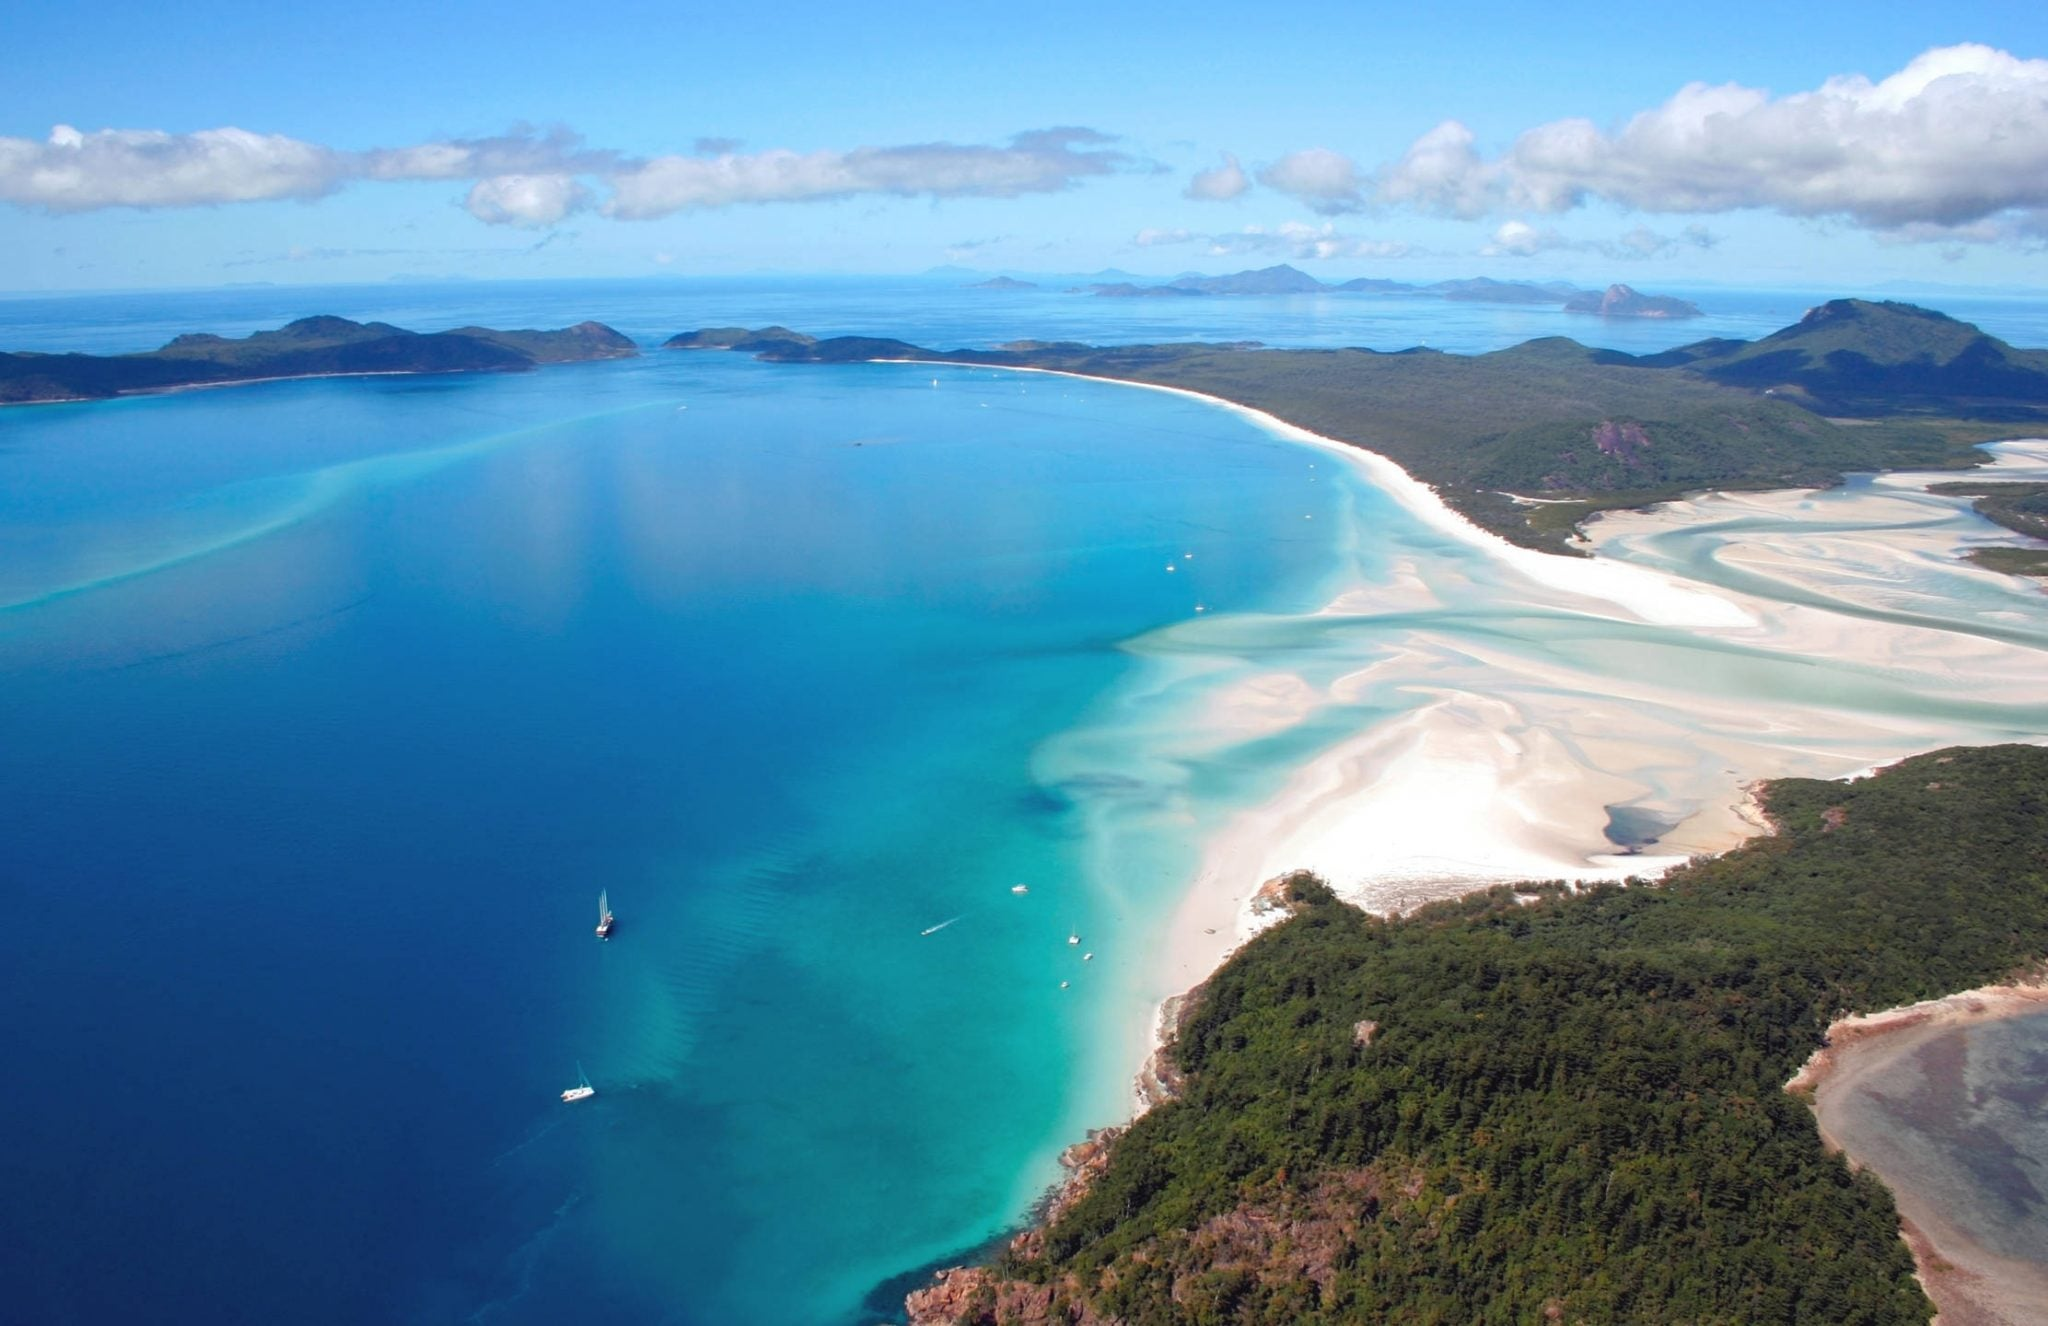 Choosing the Whitsundays Vs. Gold Coast